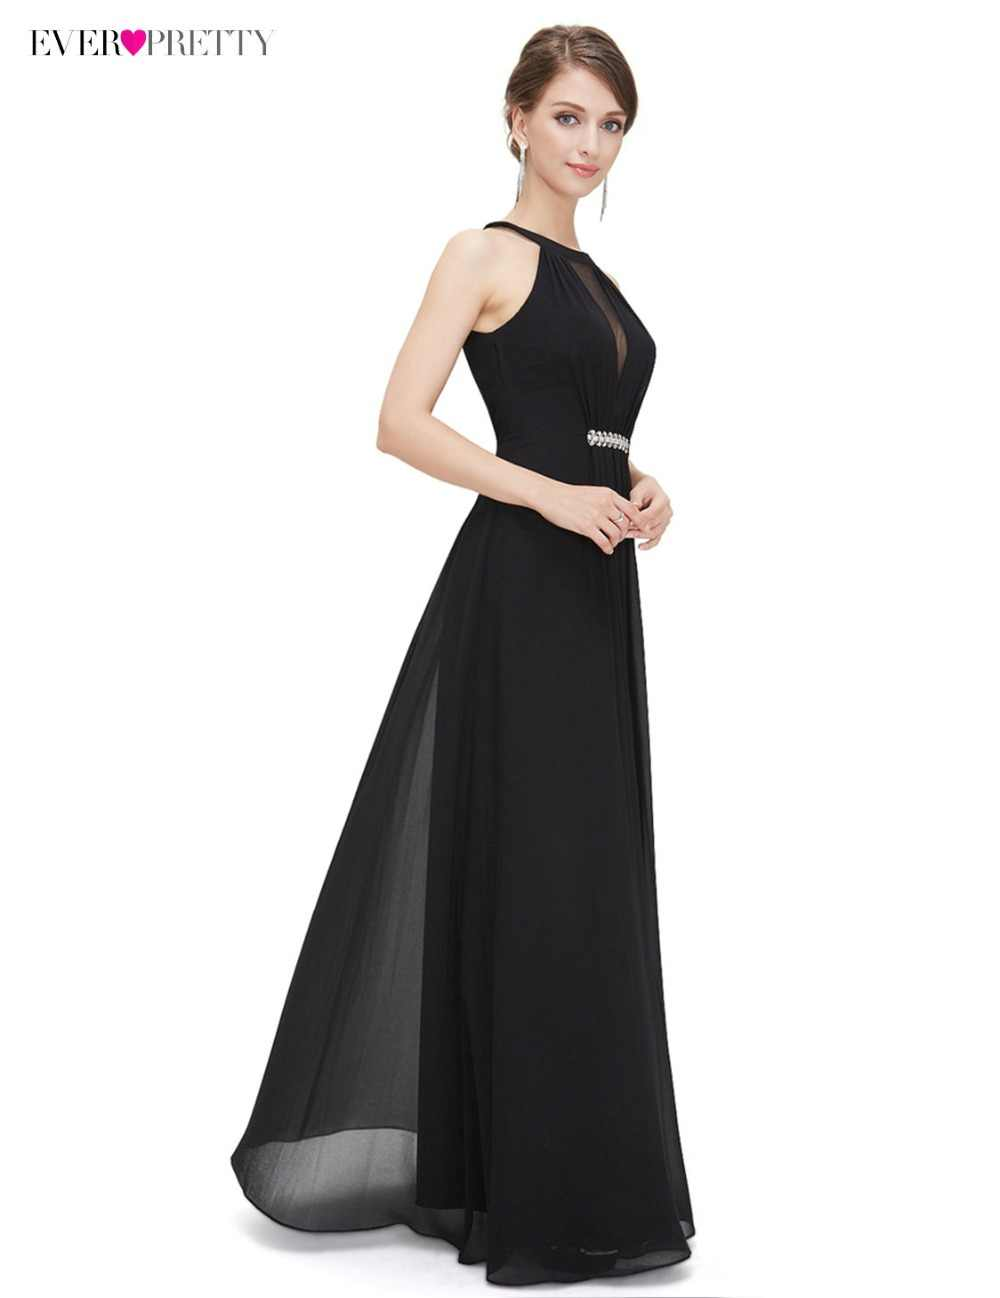 ...  Clearance Sale Ever Pretty Evening Party Dresses 2018 Women Sleeveless  Sleeveless Floor Length Halter ... 66c99adac0cb